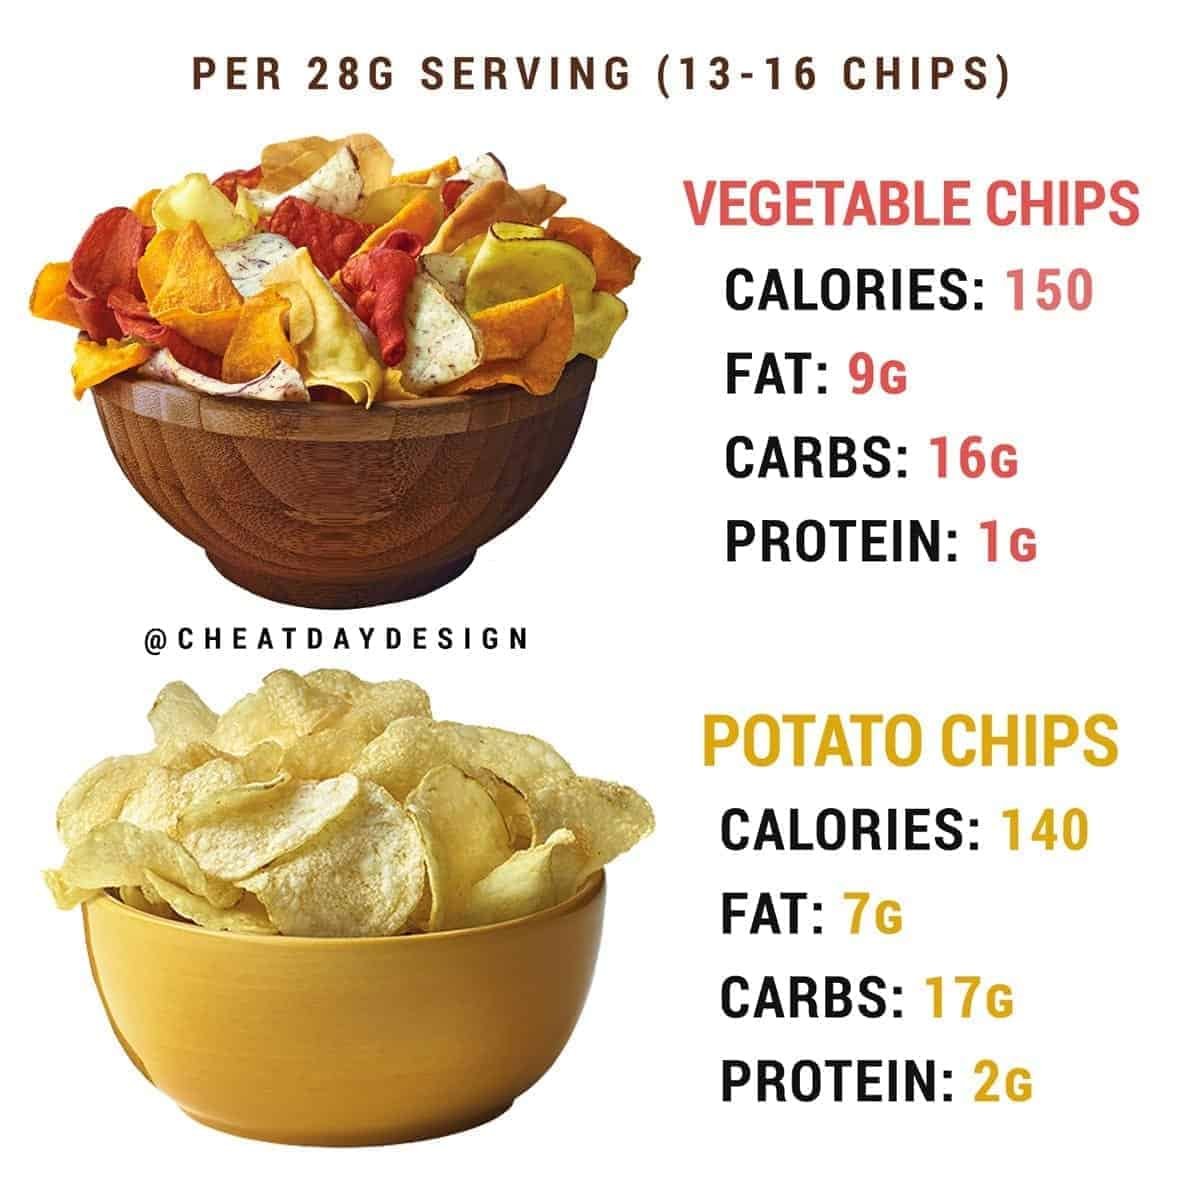 Are veggie chips healthier than potato chips?